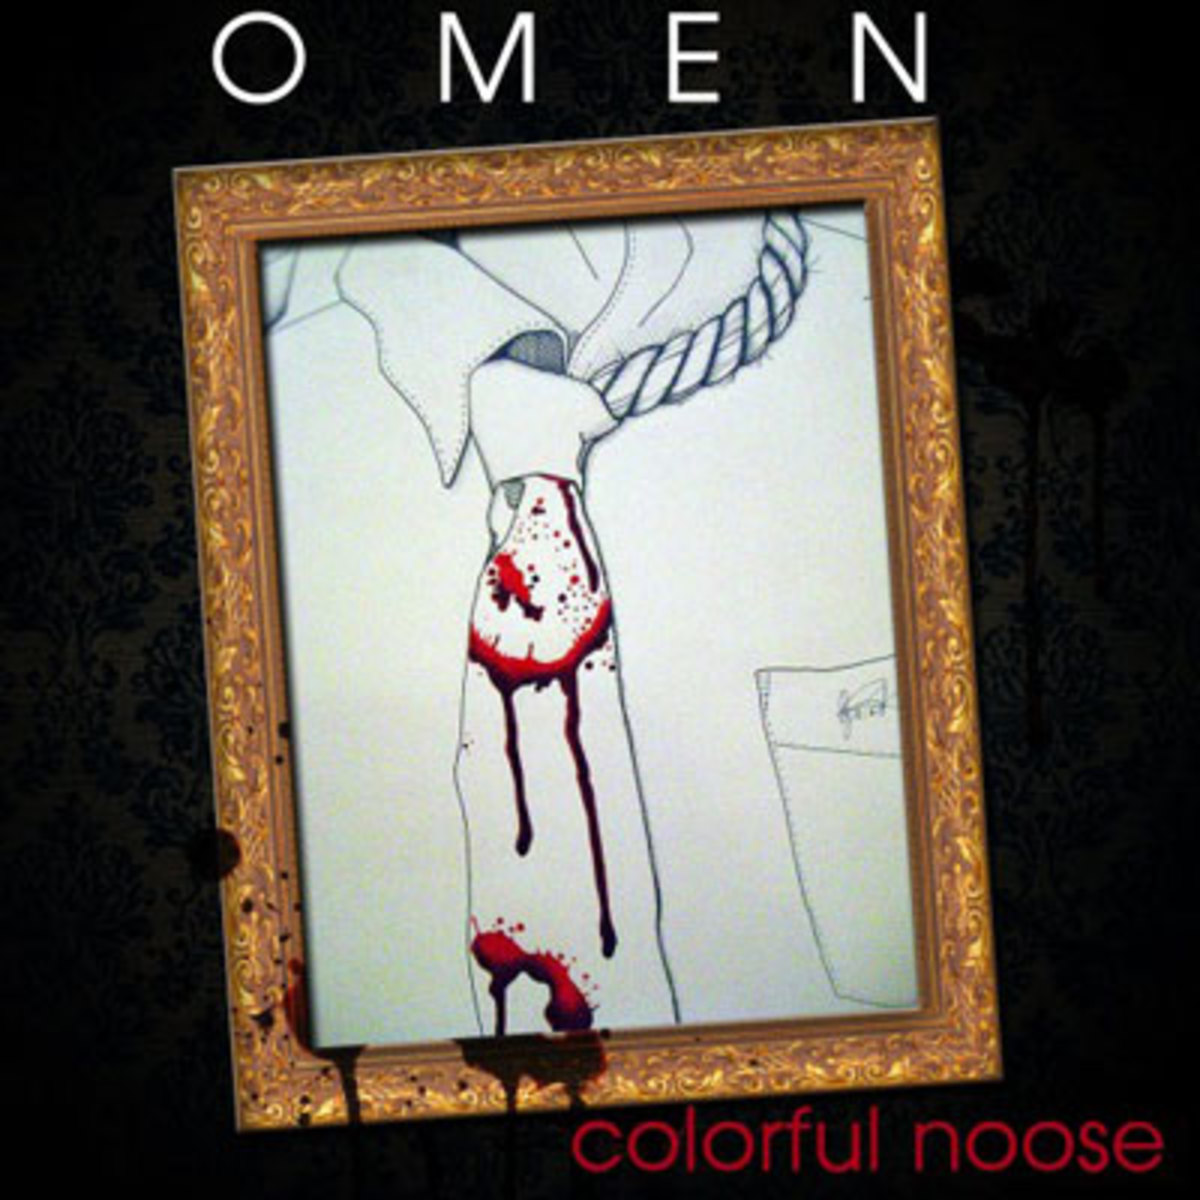 omen-colorfulnoose.jpg